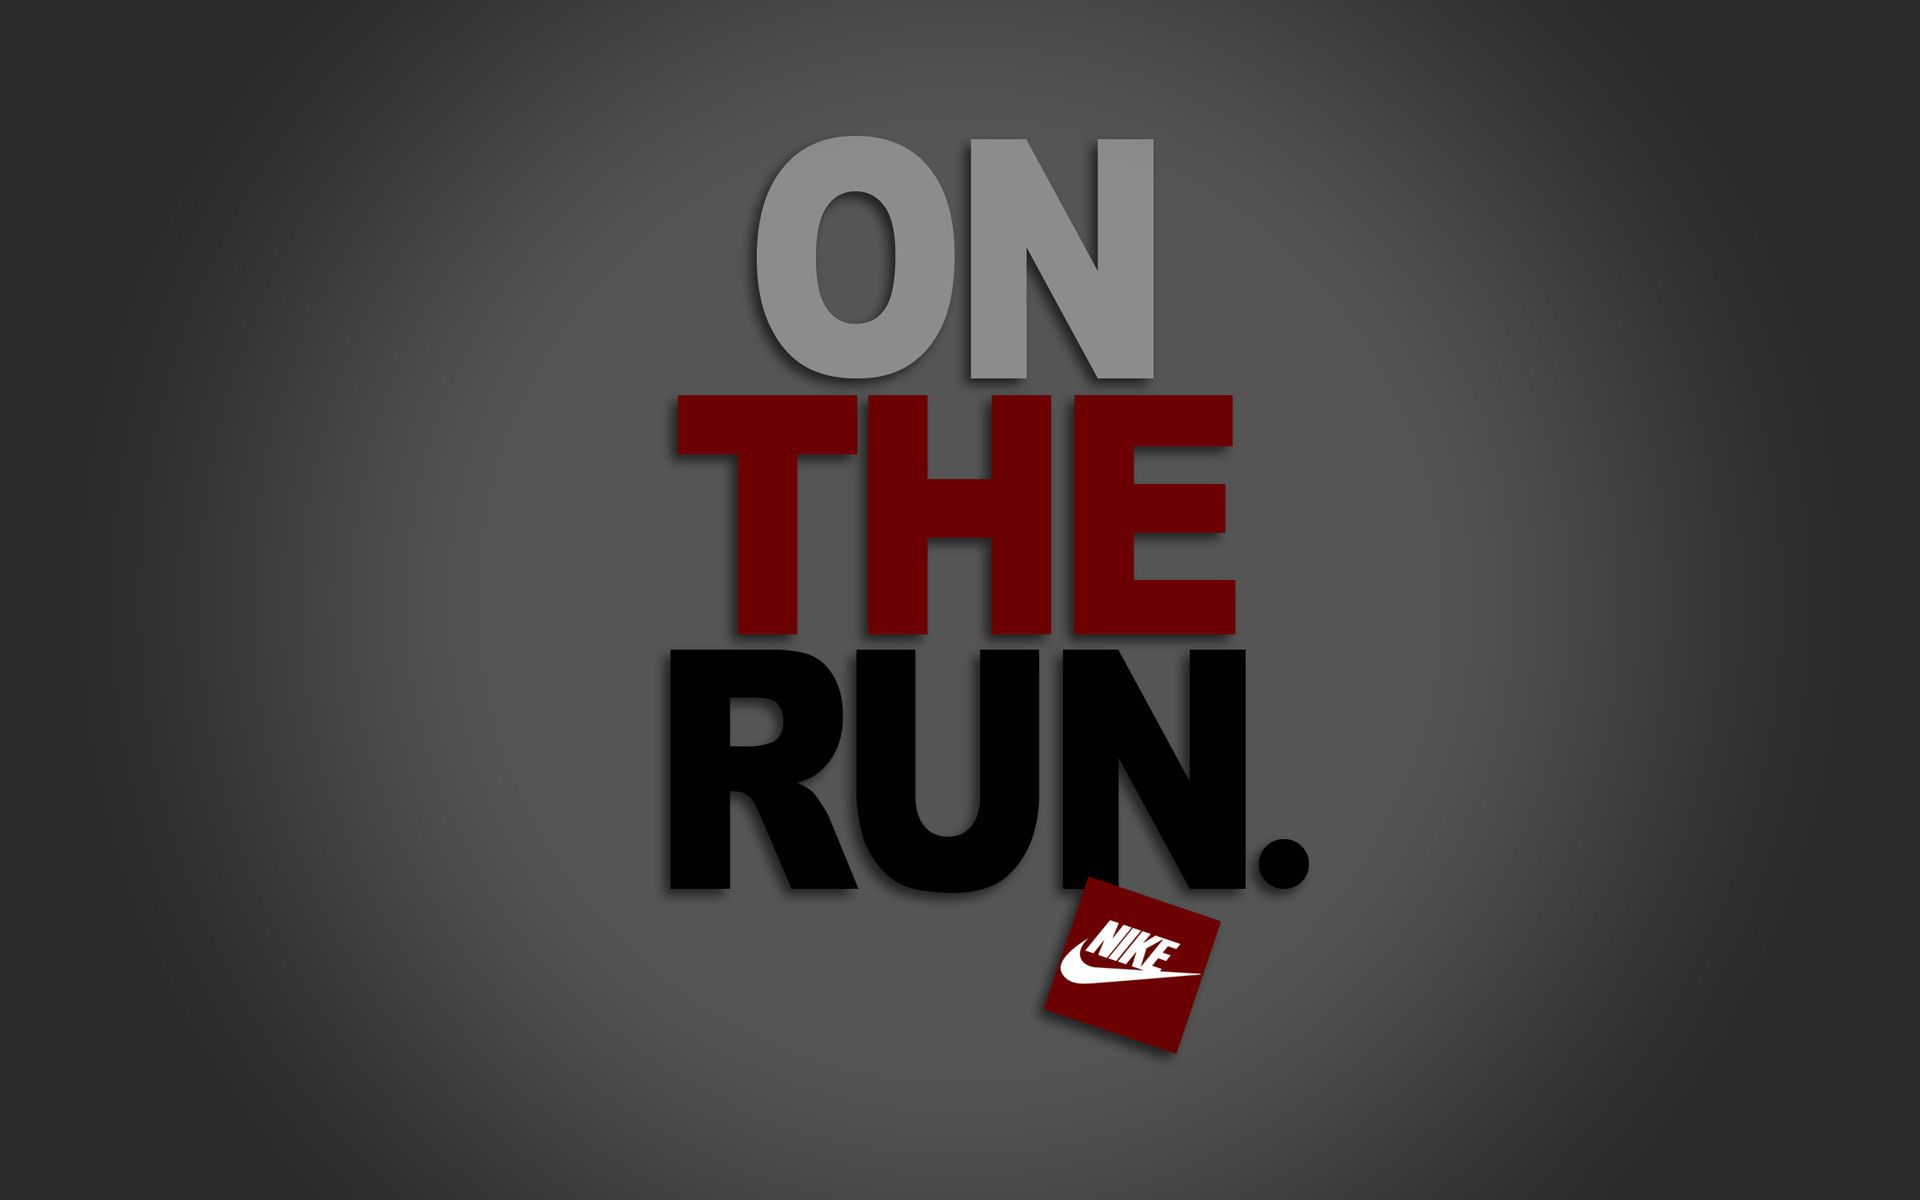 Nike Quotes Wallpaper High Quality Resolution For Desktop 1920 X 1200 Px 69231 KB Tumblt Hd 1080p Just Do It Girls Iphone 5